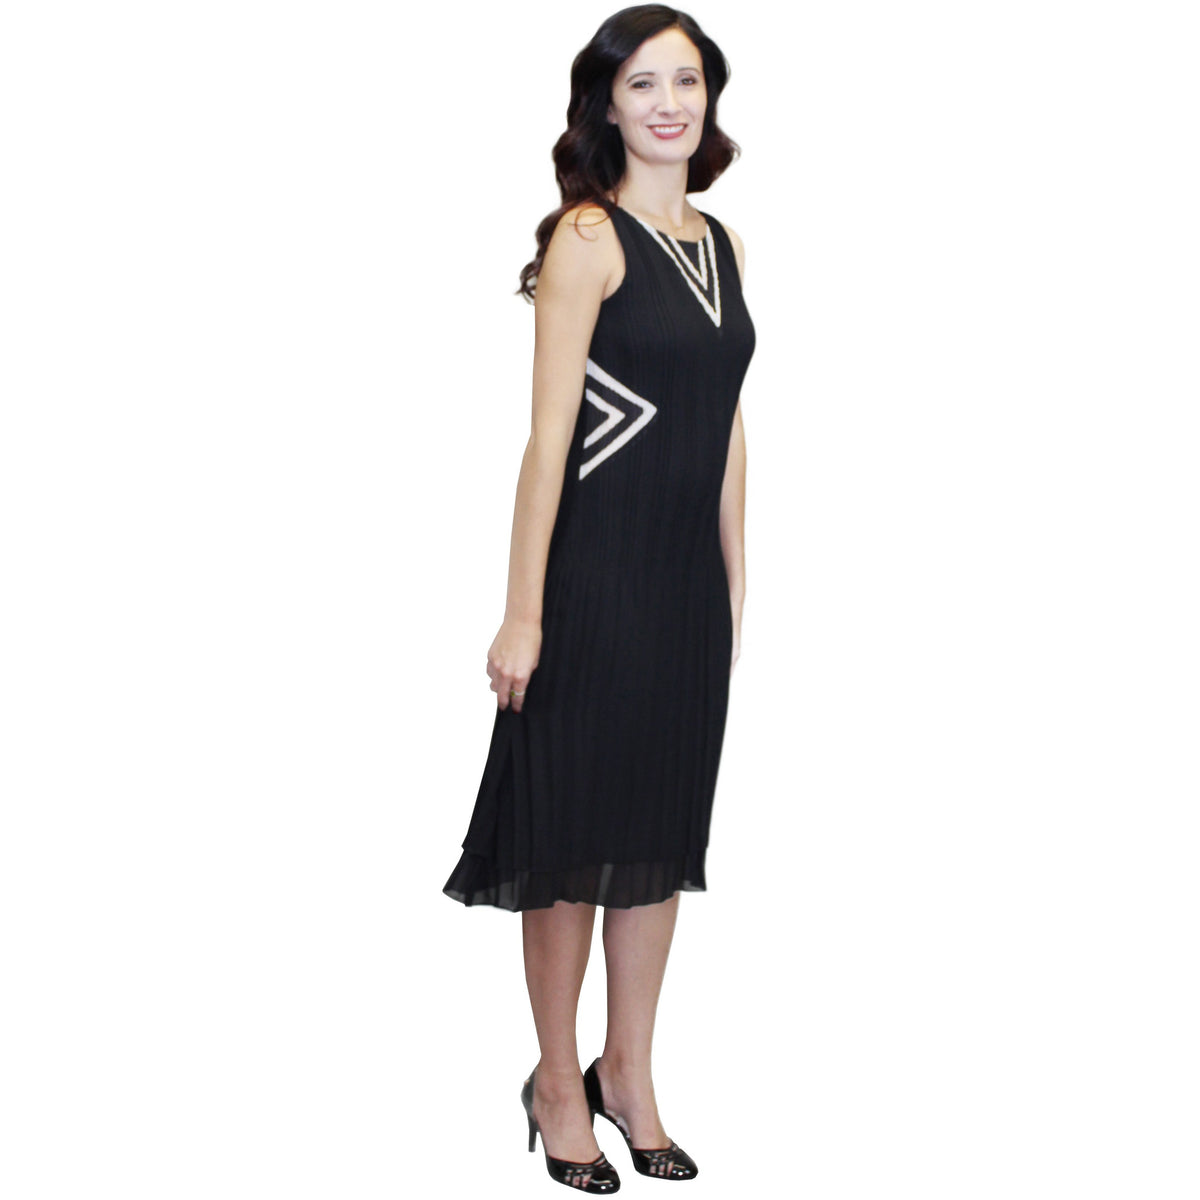 Illusion V Neck Dress - Black